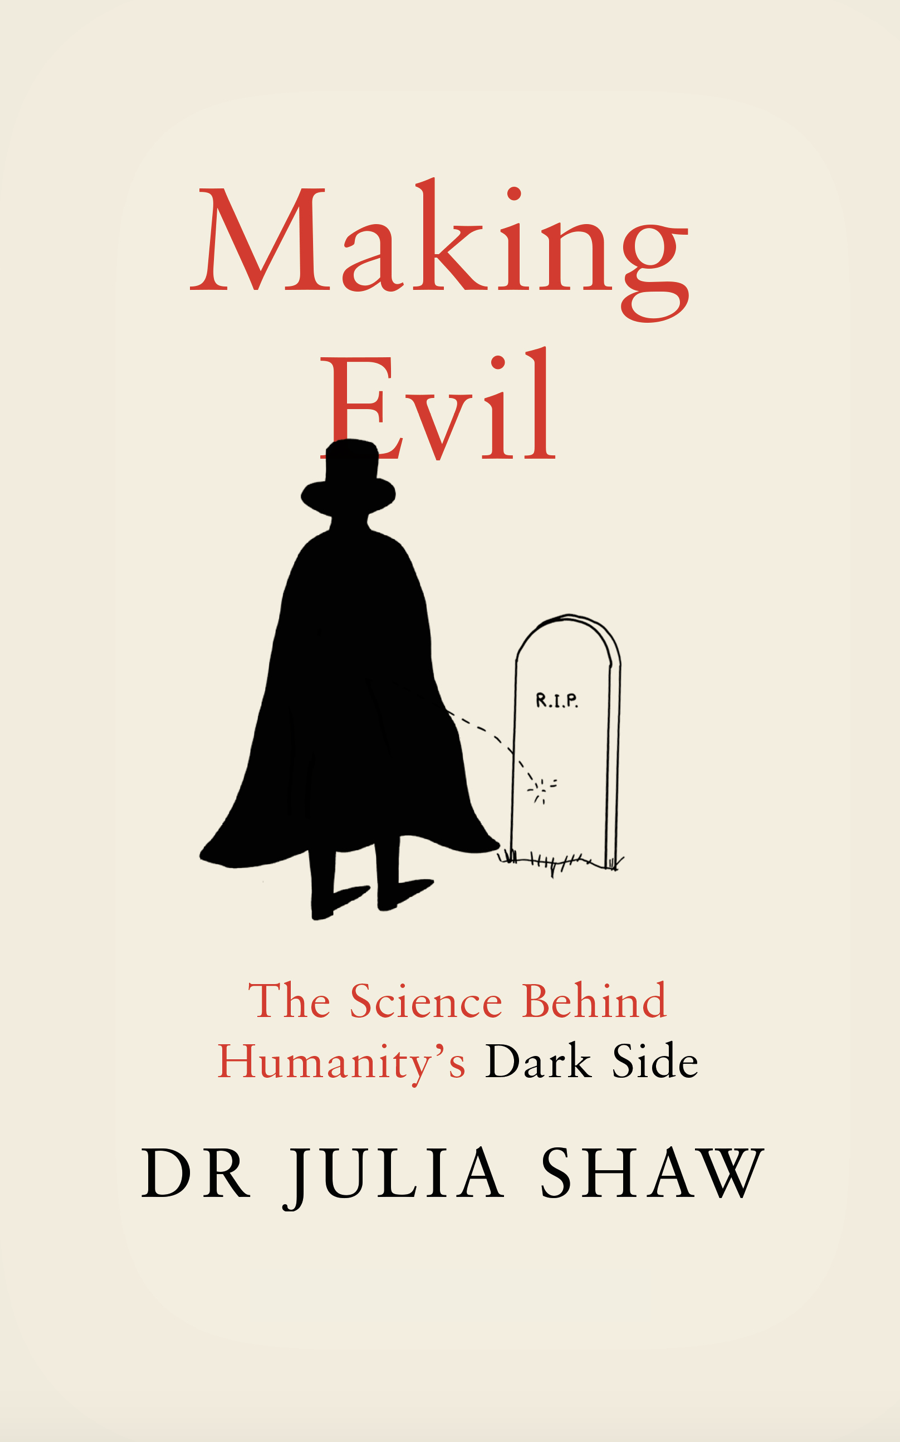 Making Evil UK Dr Julia Shaw Shrigley book.png